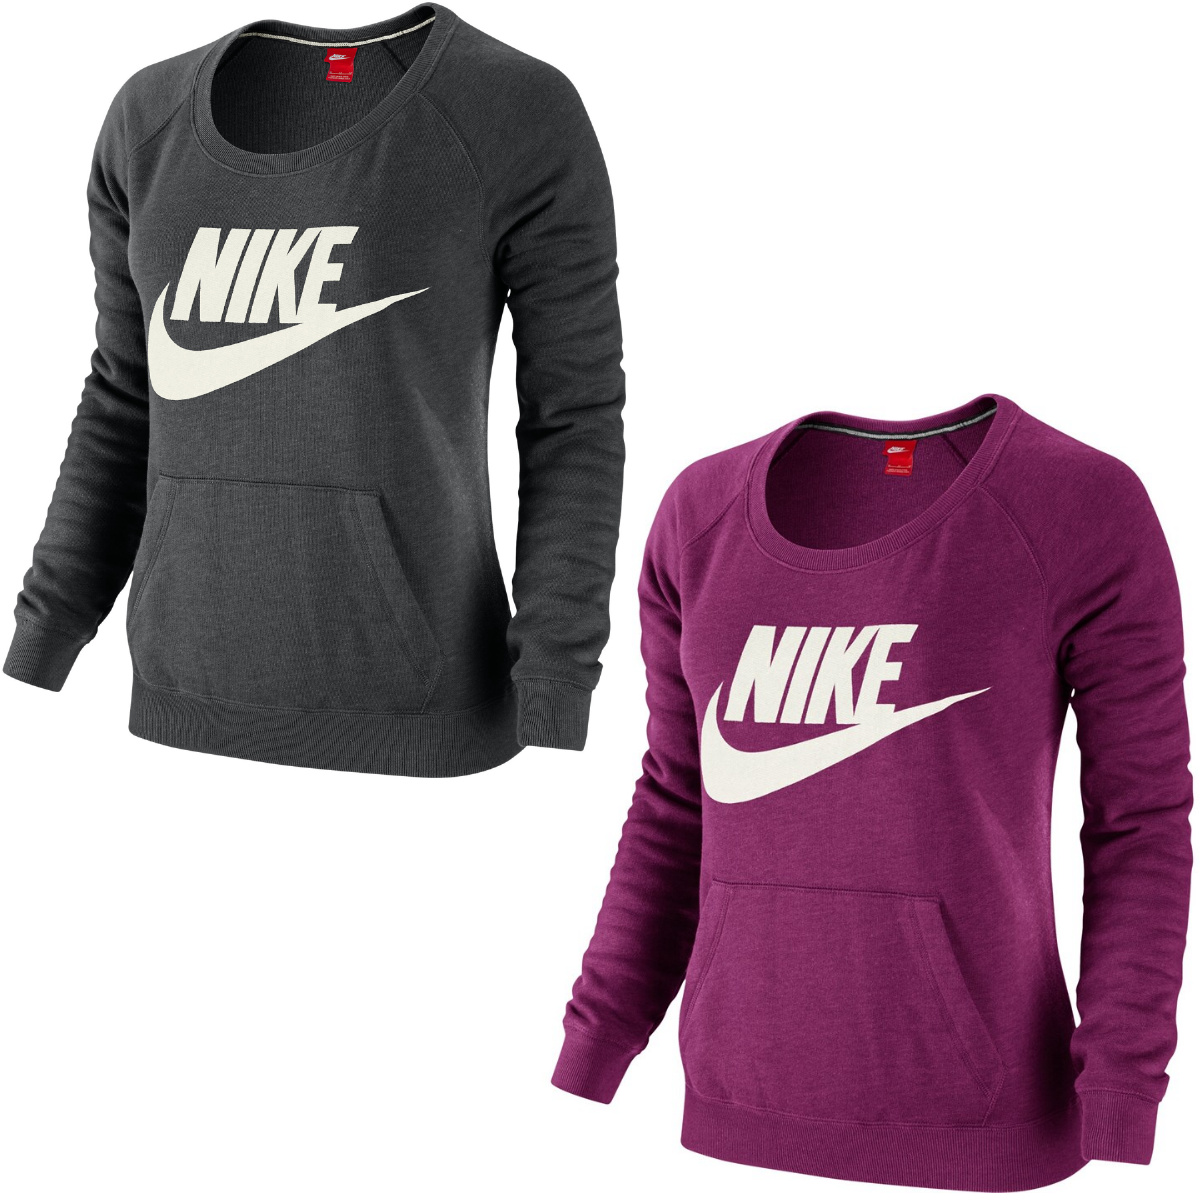 nike rally crew logo shirt sweatshirt pullover sportshirt damen grau lila ebay. Black Bedroom Furniture Sets. Home Design Ideas